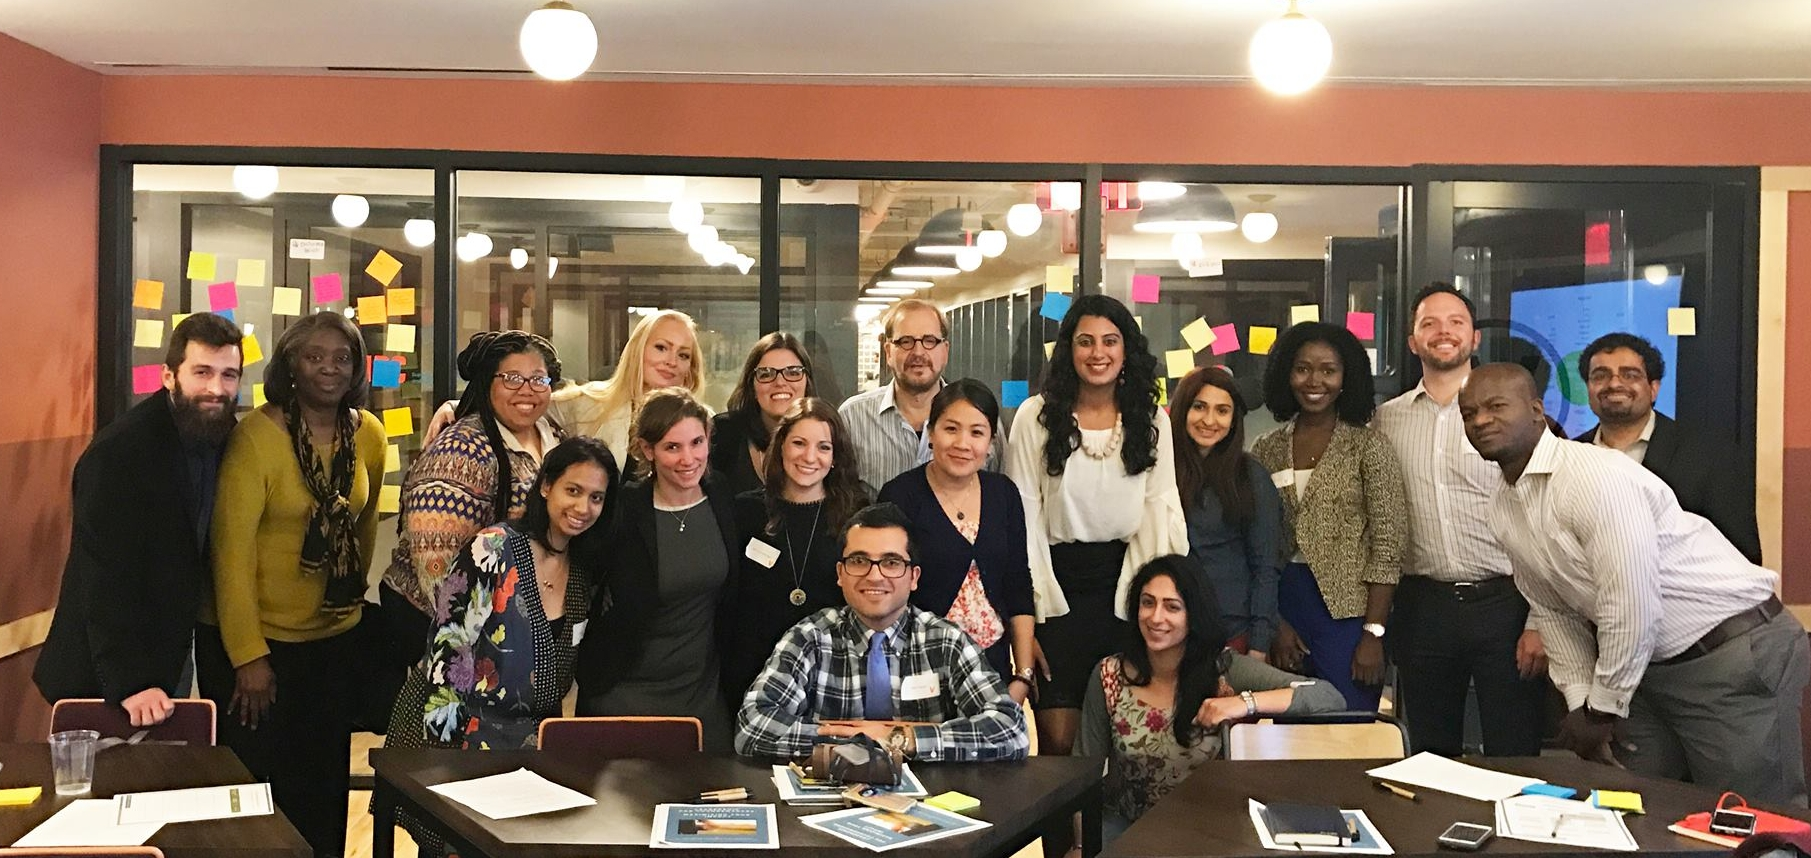 Leaders in Washington D.C. uncover their high impact leadership styles during Inner Peacebuilding's Leadership for Changemakers Workshop